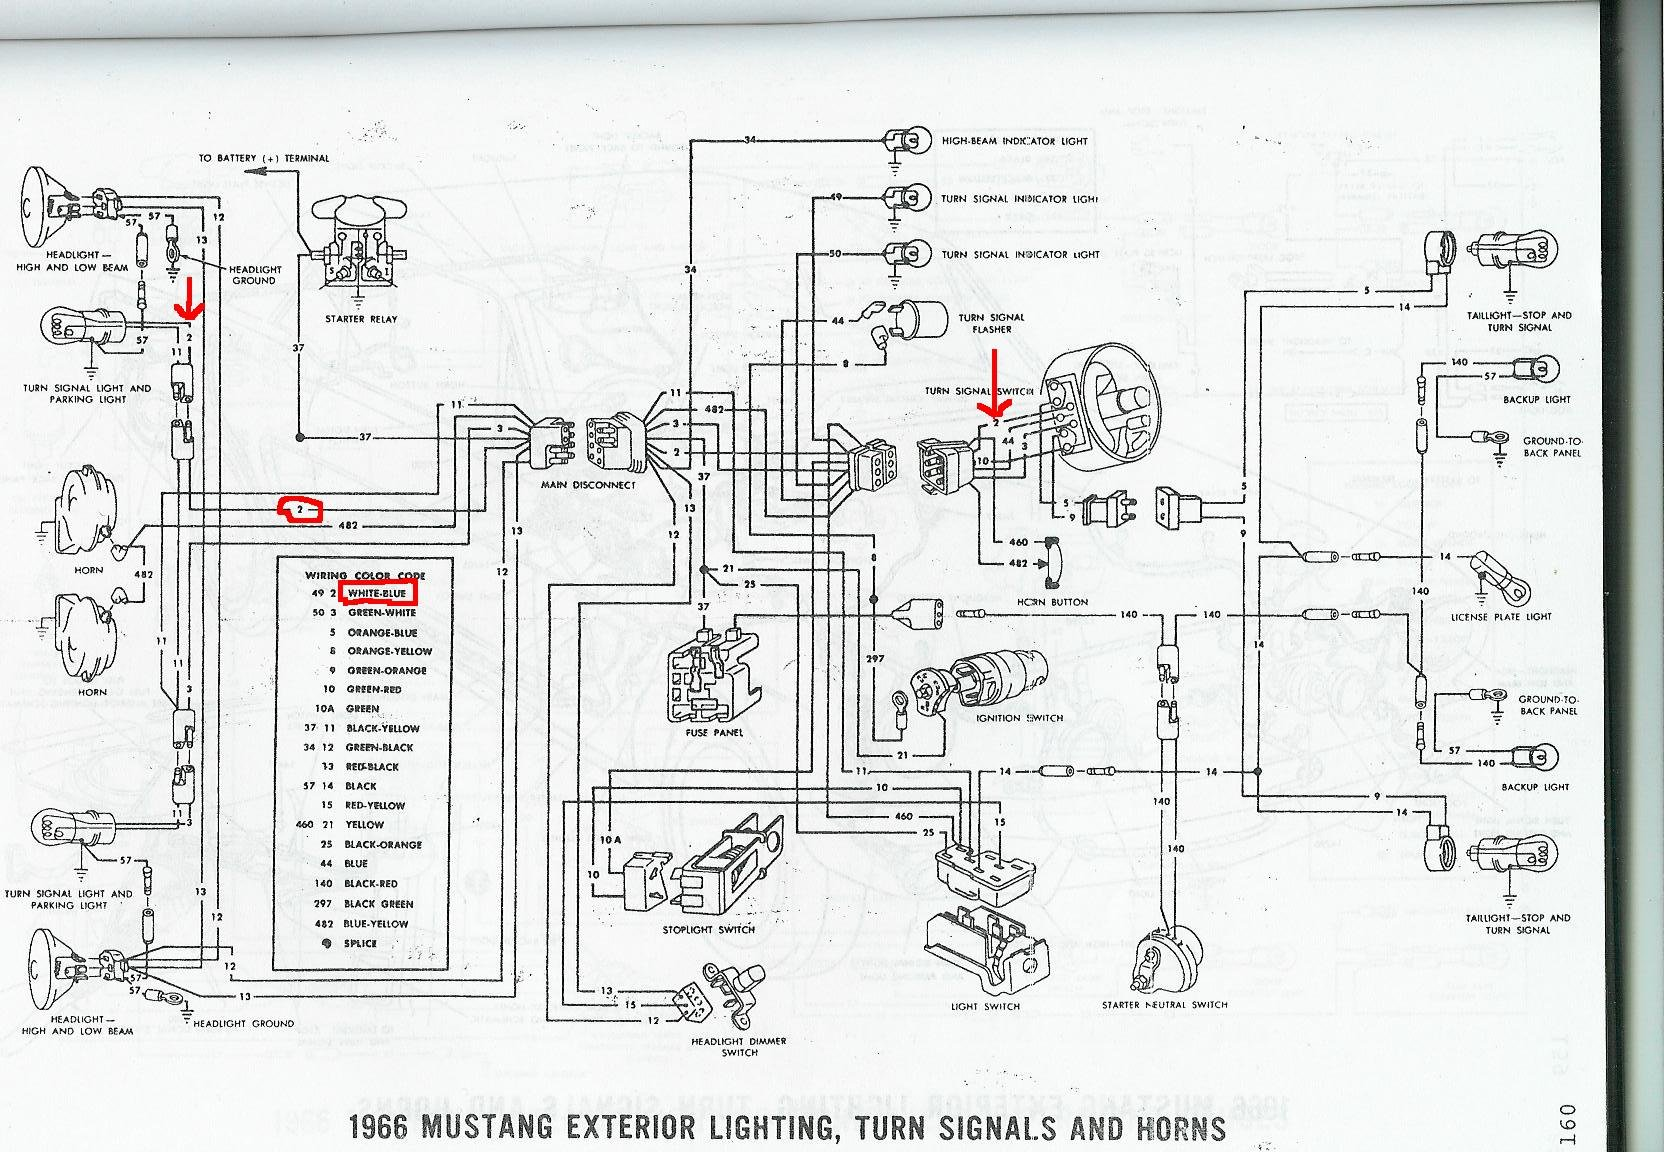 DIAGRAM] 2008 Ford Mustang Parking Light Wiring Diagram FULL Version HD  Quality Wiring Diagram - VORONOYDIAGRAM.MAGNETIKITALIA.ITMagnetik Italia srl